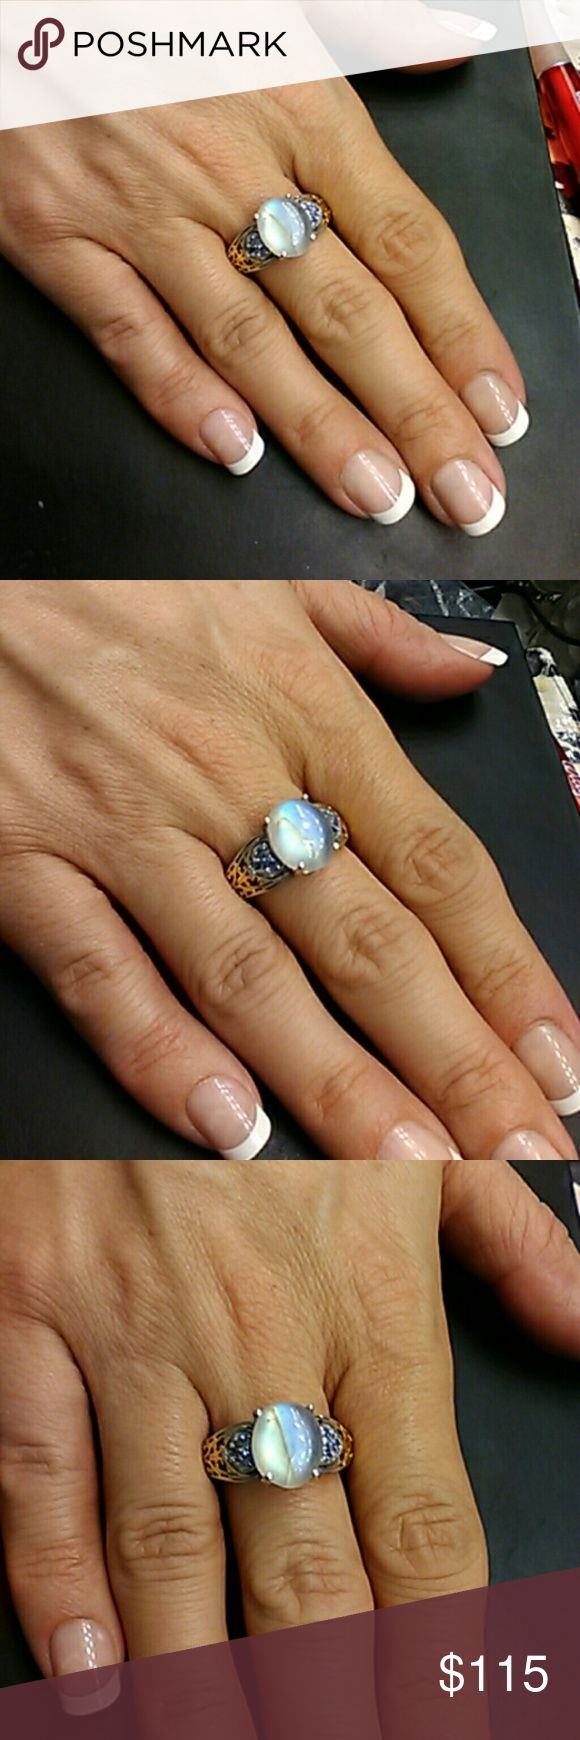 6.50ctw Moonstone & Tanzanite 14k Gold / 925 Stunning artisan Moonstone & Tanzanite ring. Genuine natural 6.50 carat total weight Moonstone & Tanzainte. 14k gold & Platinum over solid 925 sterling silver. Size 10 Can be sized by a jeweler I verified by mine. estate 925 Jewelry Rings